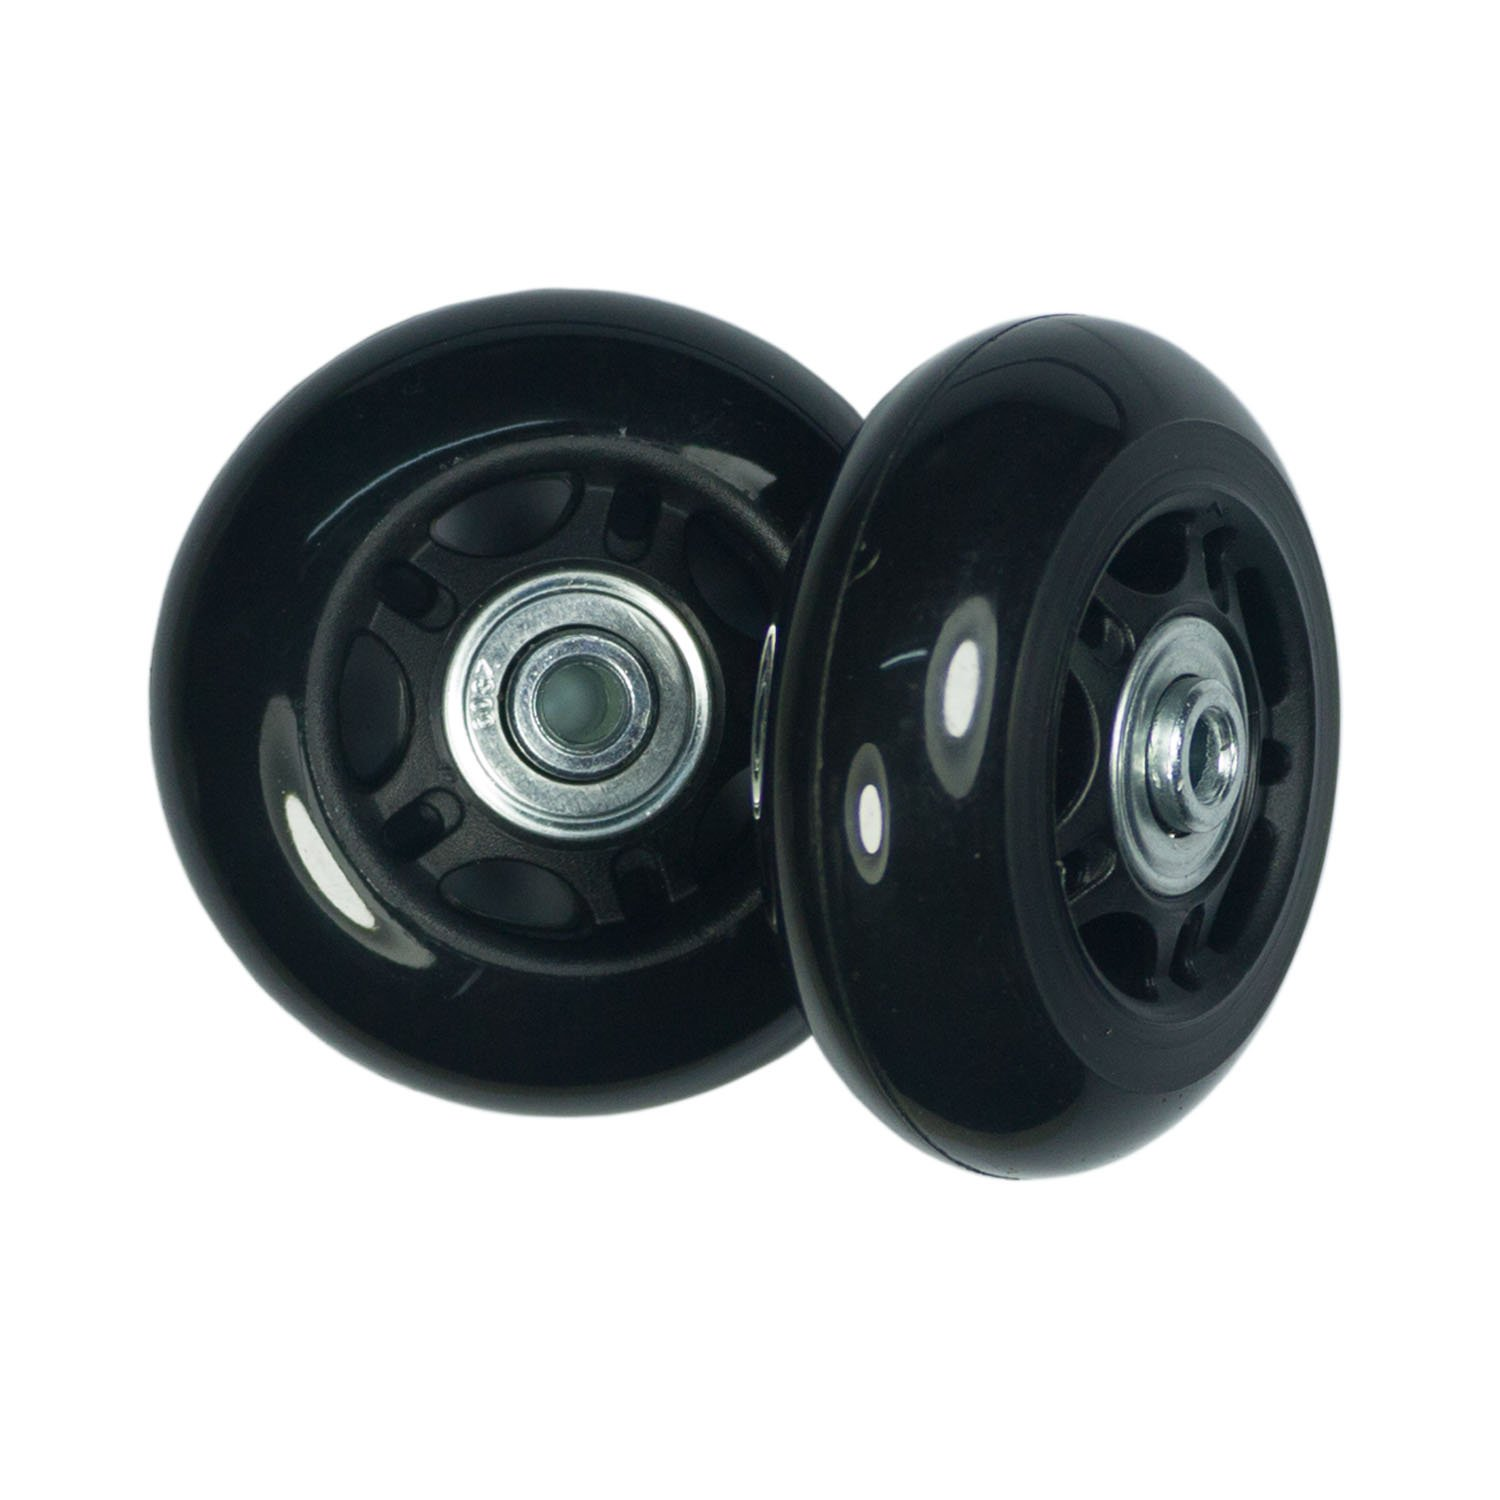 YongXuan Mute Wear-Resistant Luggage Suitcase Replacement Wheels Kit Inline Outdoor Skate Replacement Wheels 68mm /× 24mm